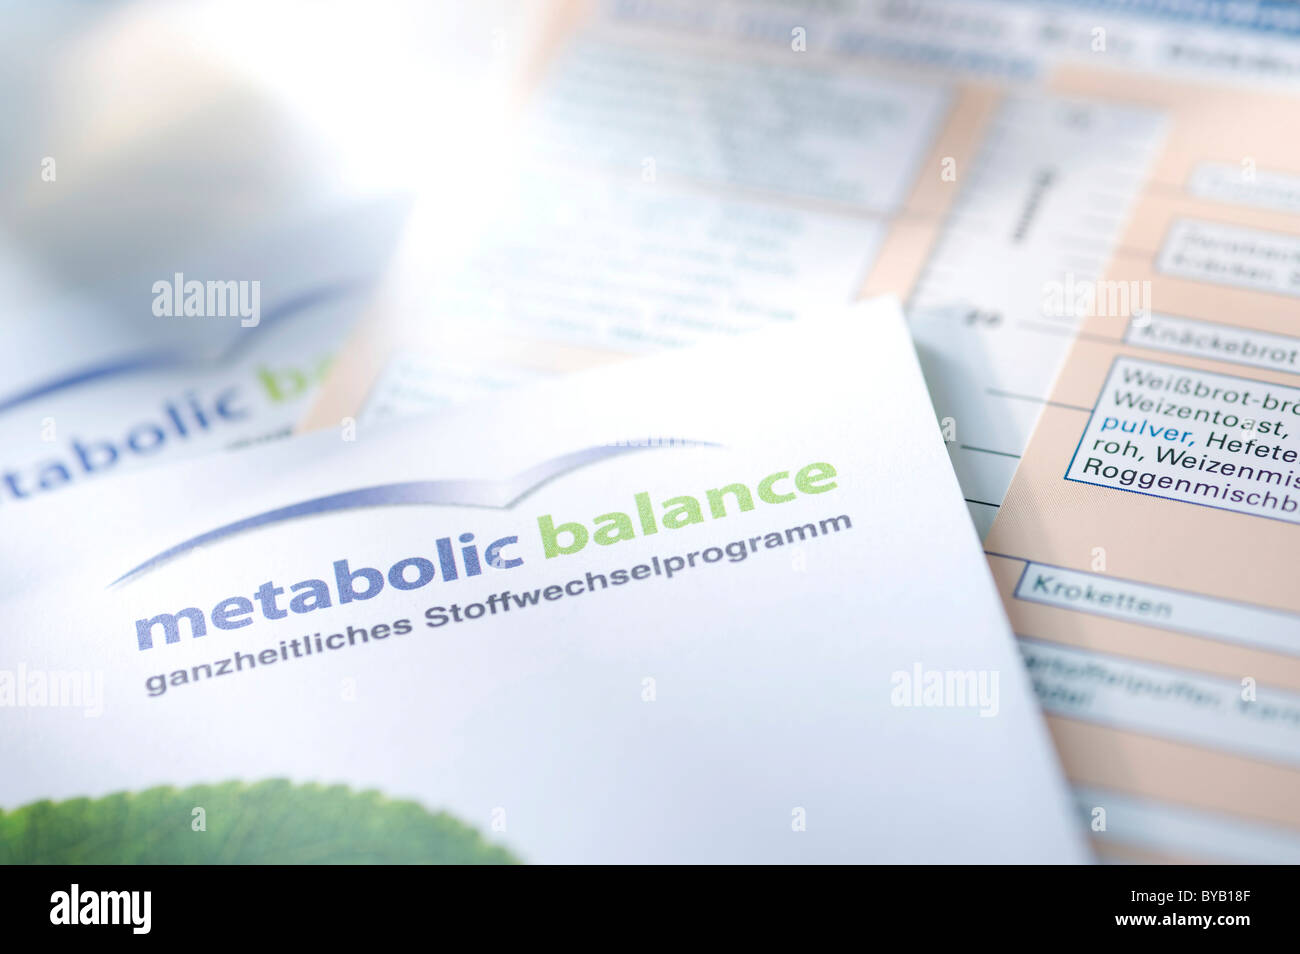 Flyer about metabolism - Stock Image